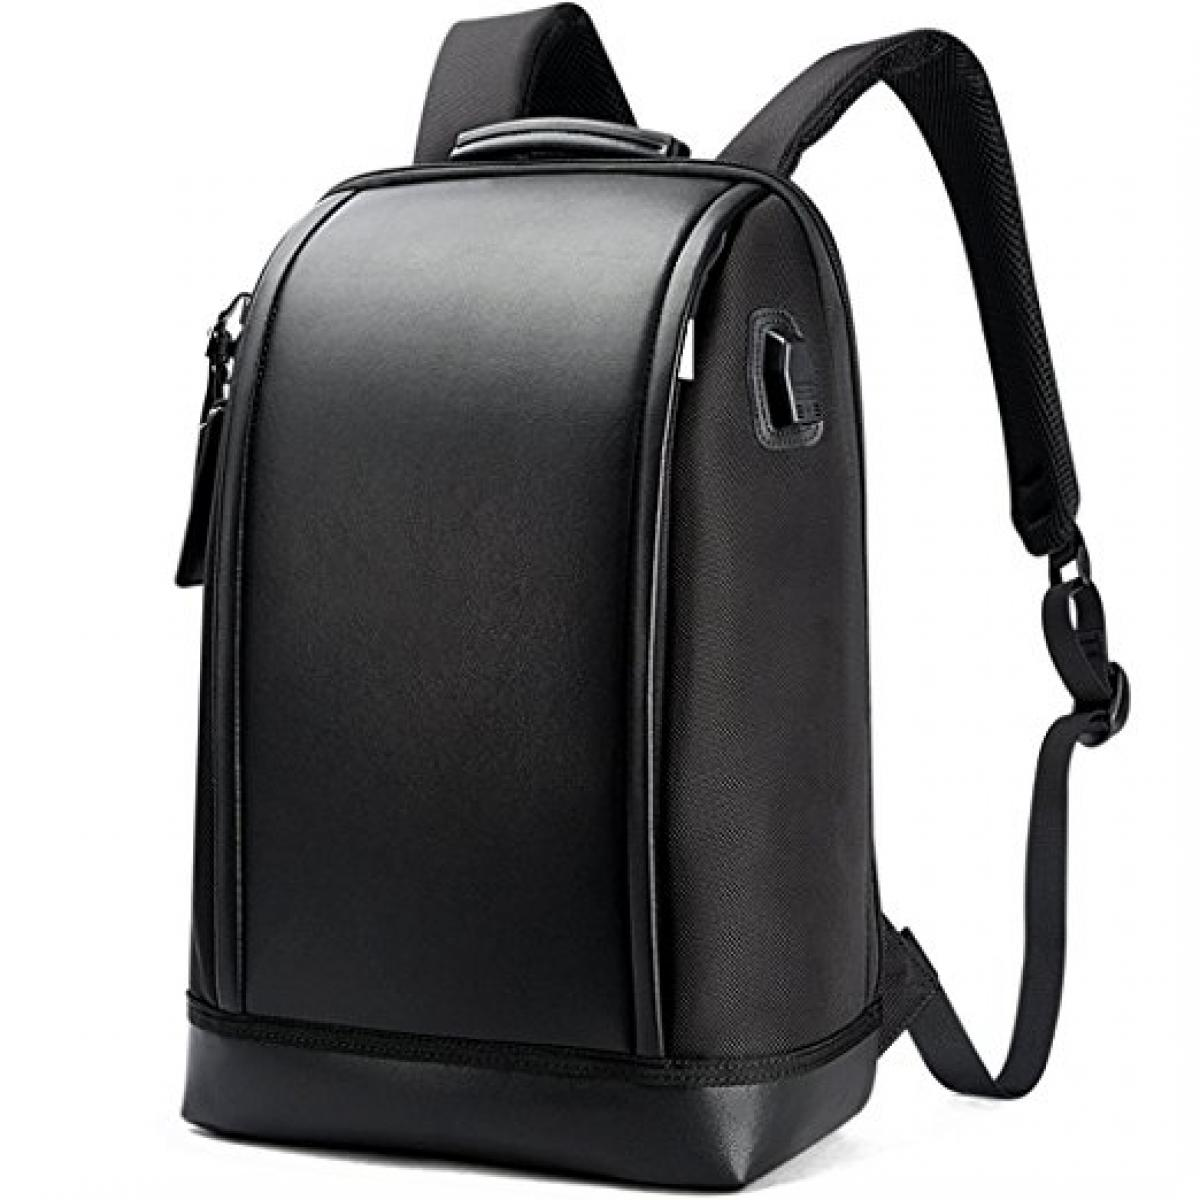 Bopai Business 15.6 inch Laptop Backpack